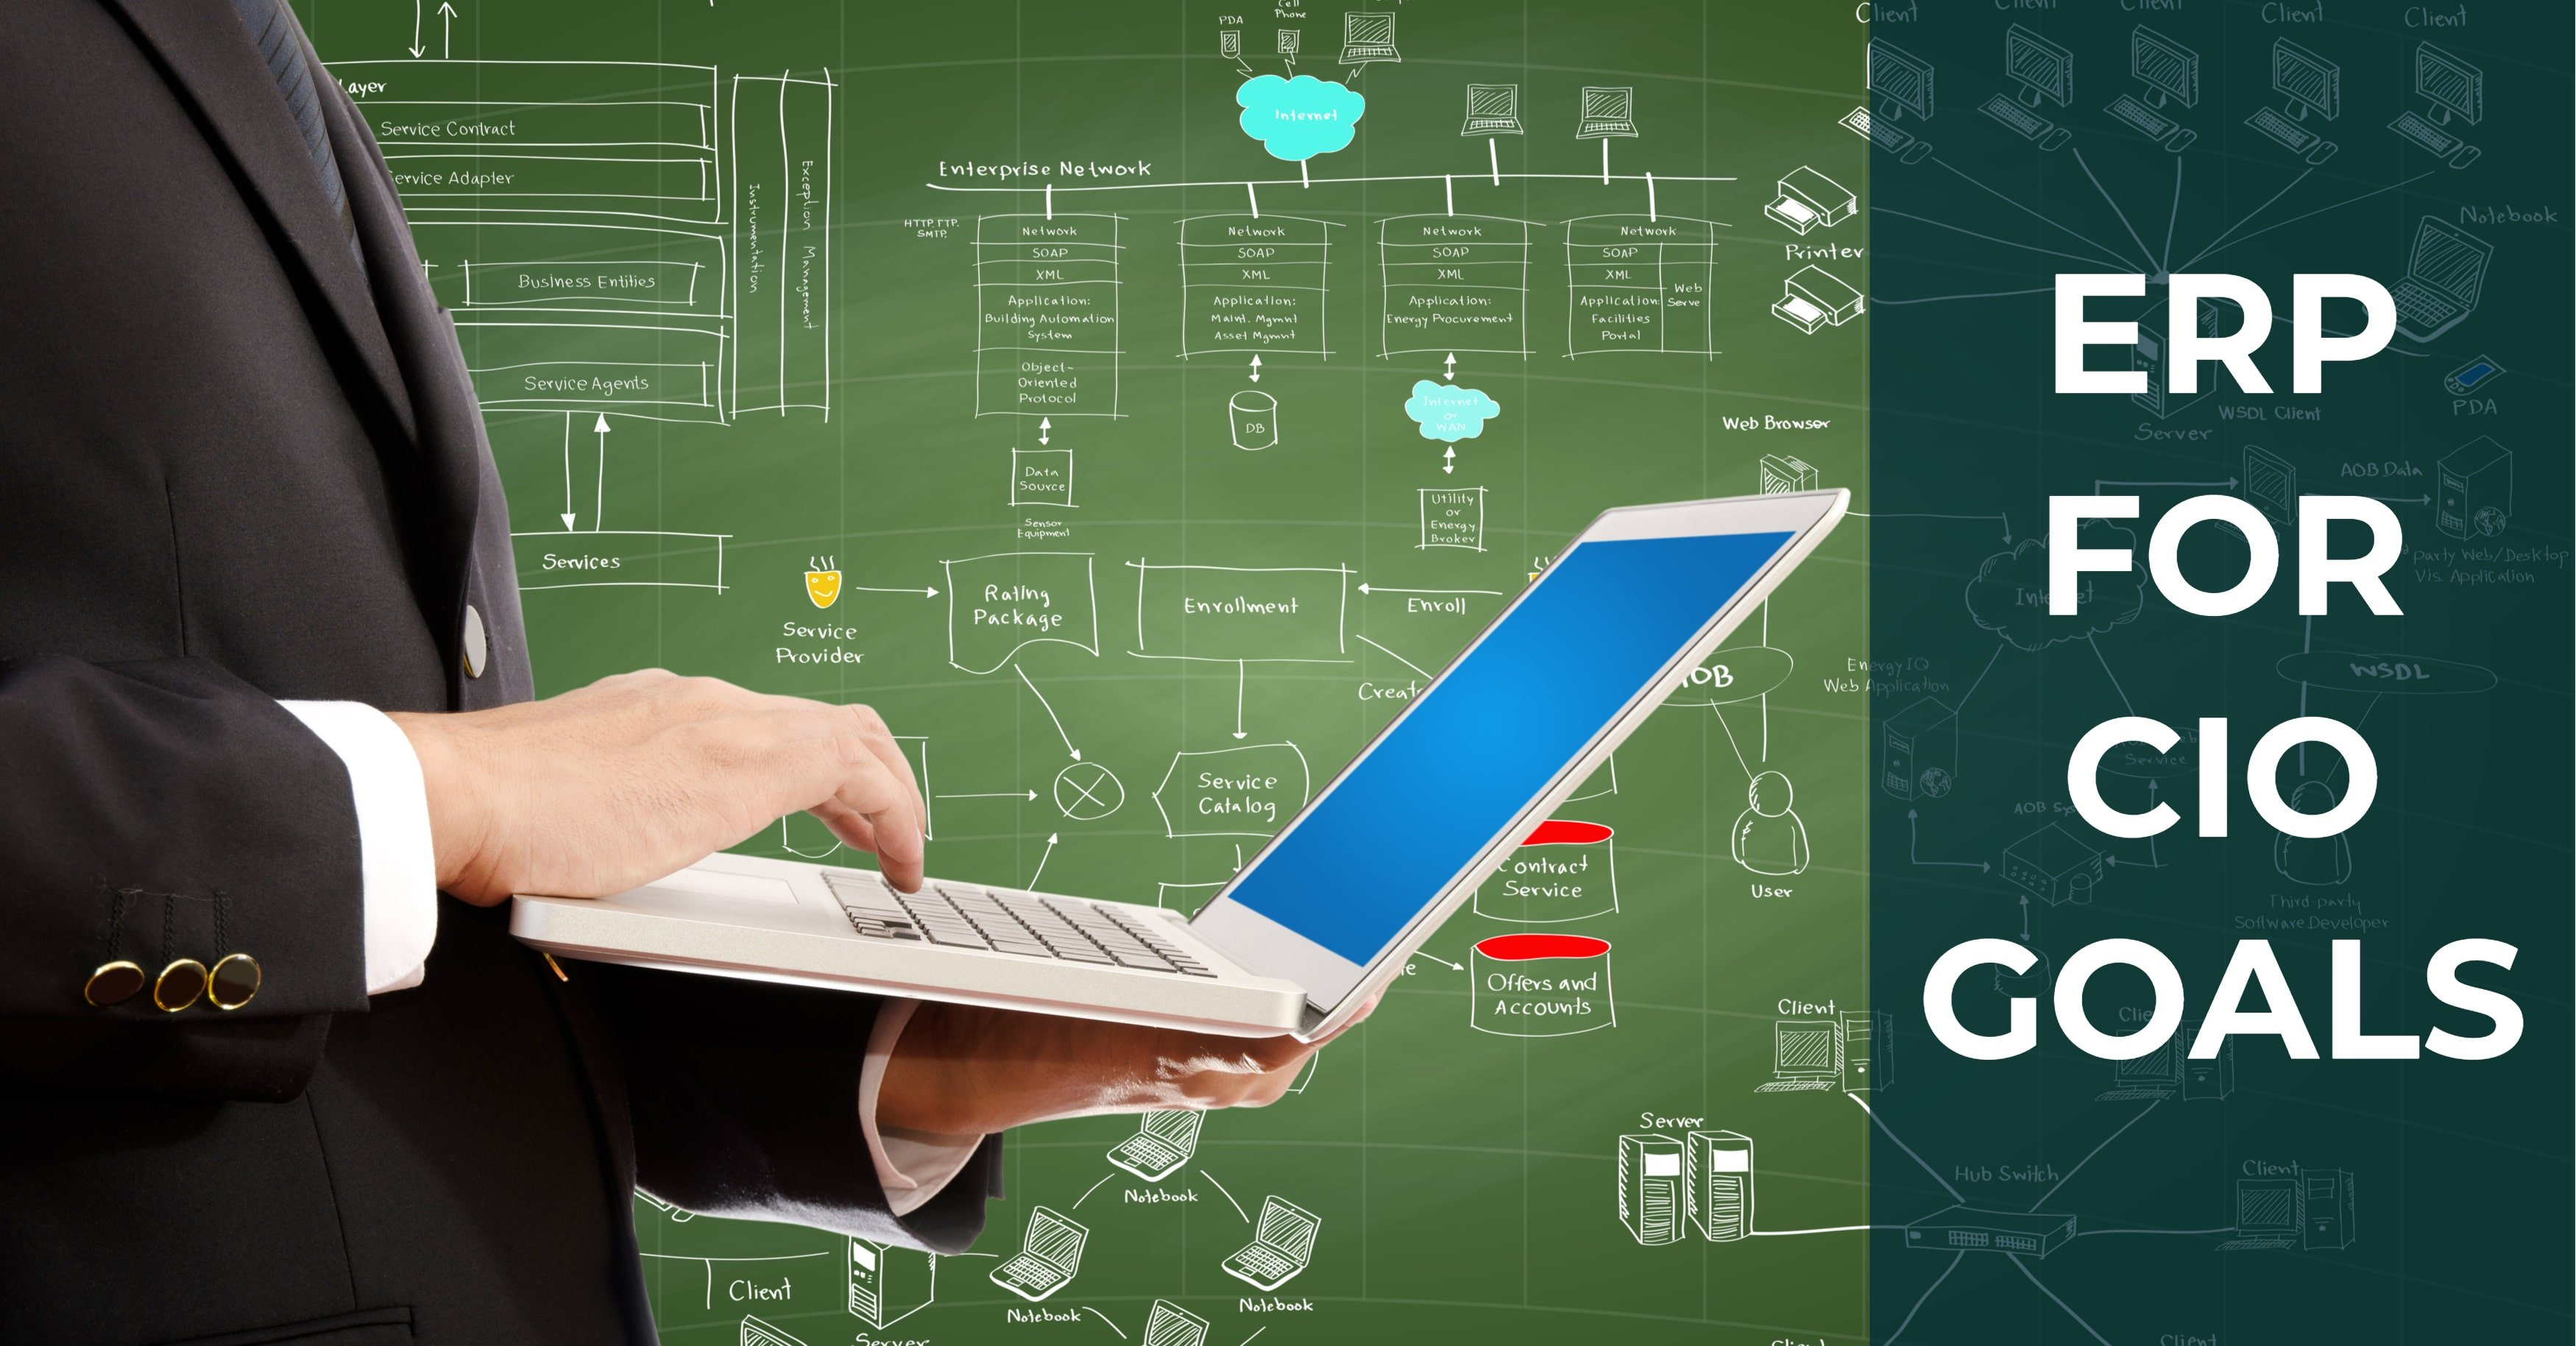 What Makes ERP a Must for Manufacturing CIOs?